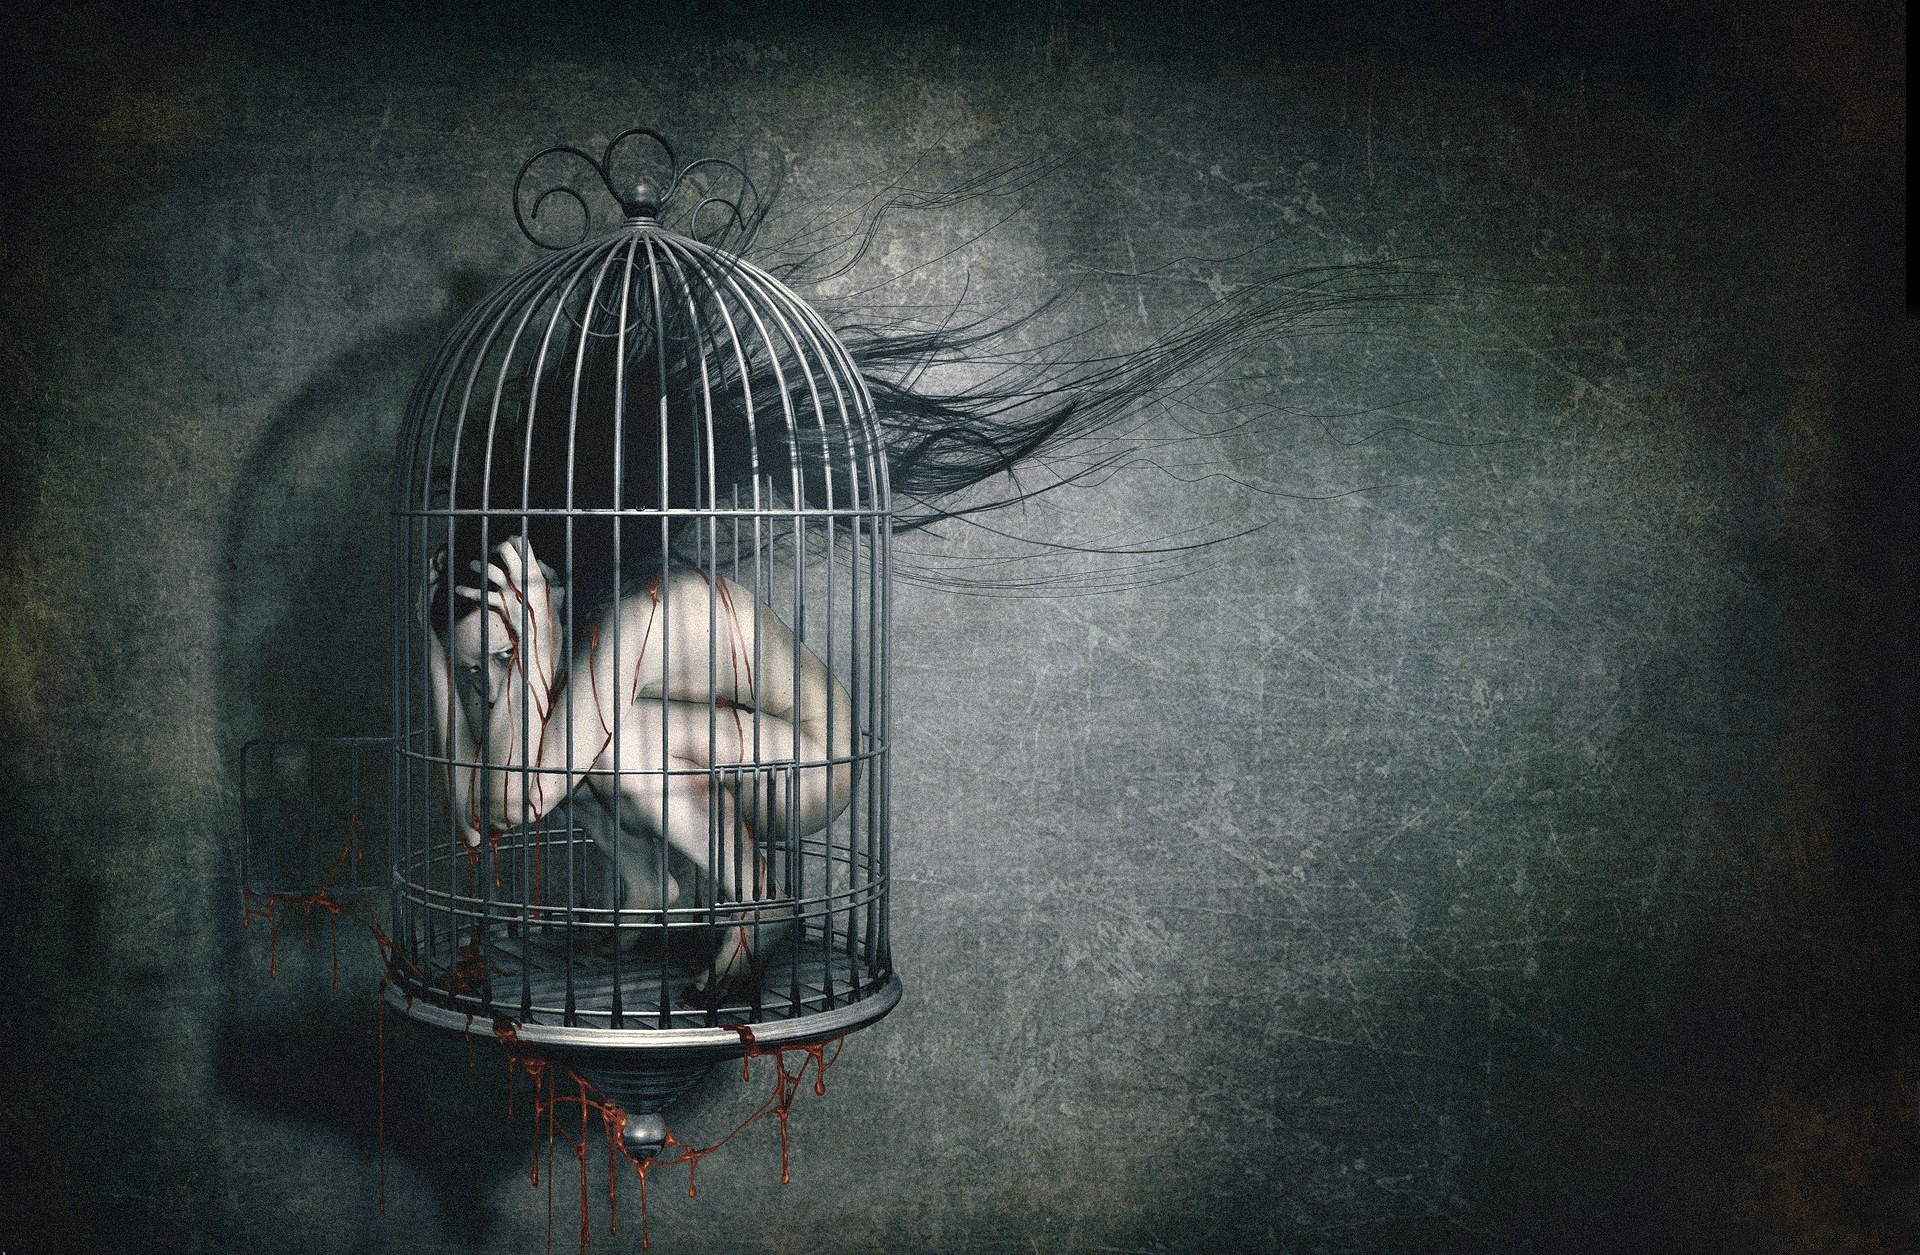 Lonely Emo Girl Hd Wallpaper Dark Horror Creepy Blood Macabre Cage Sad Sorrow Wallpaper